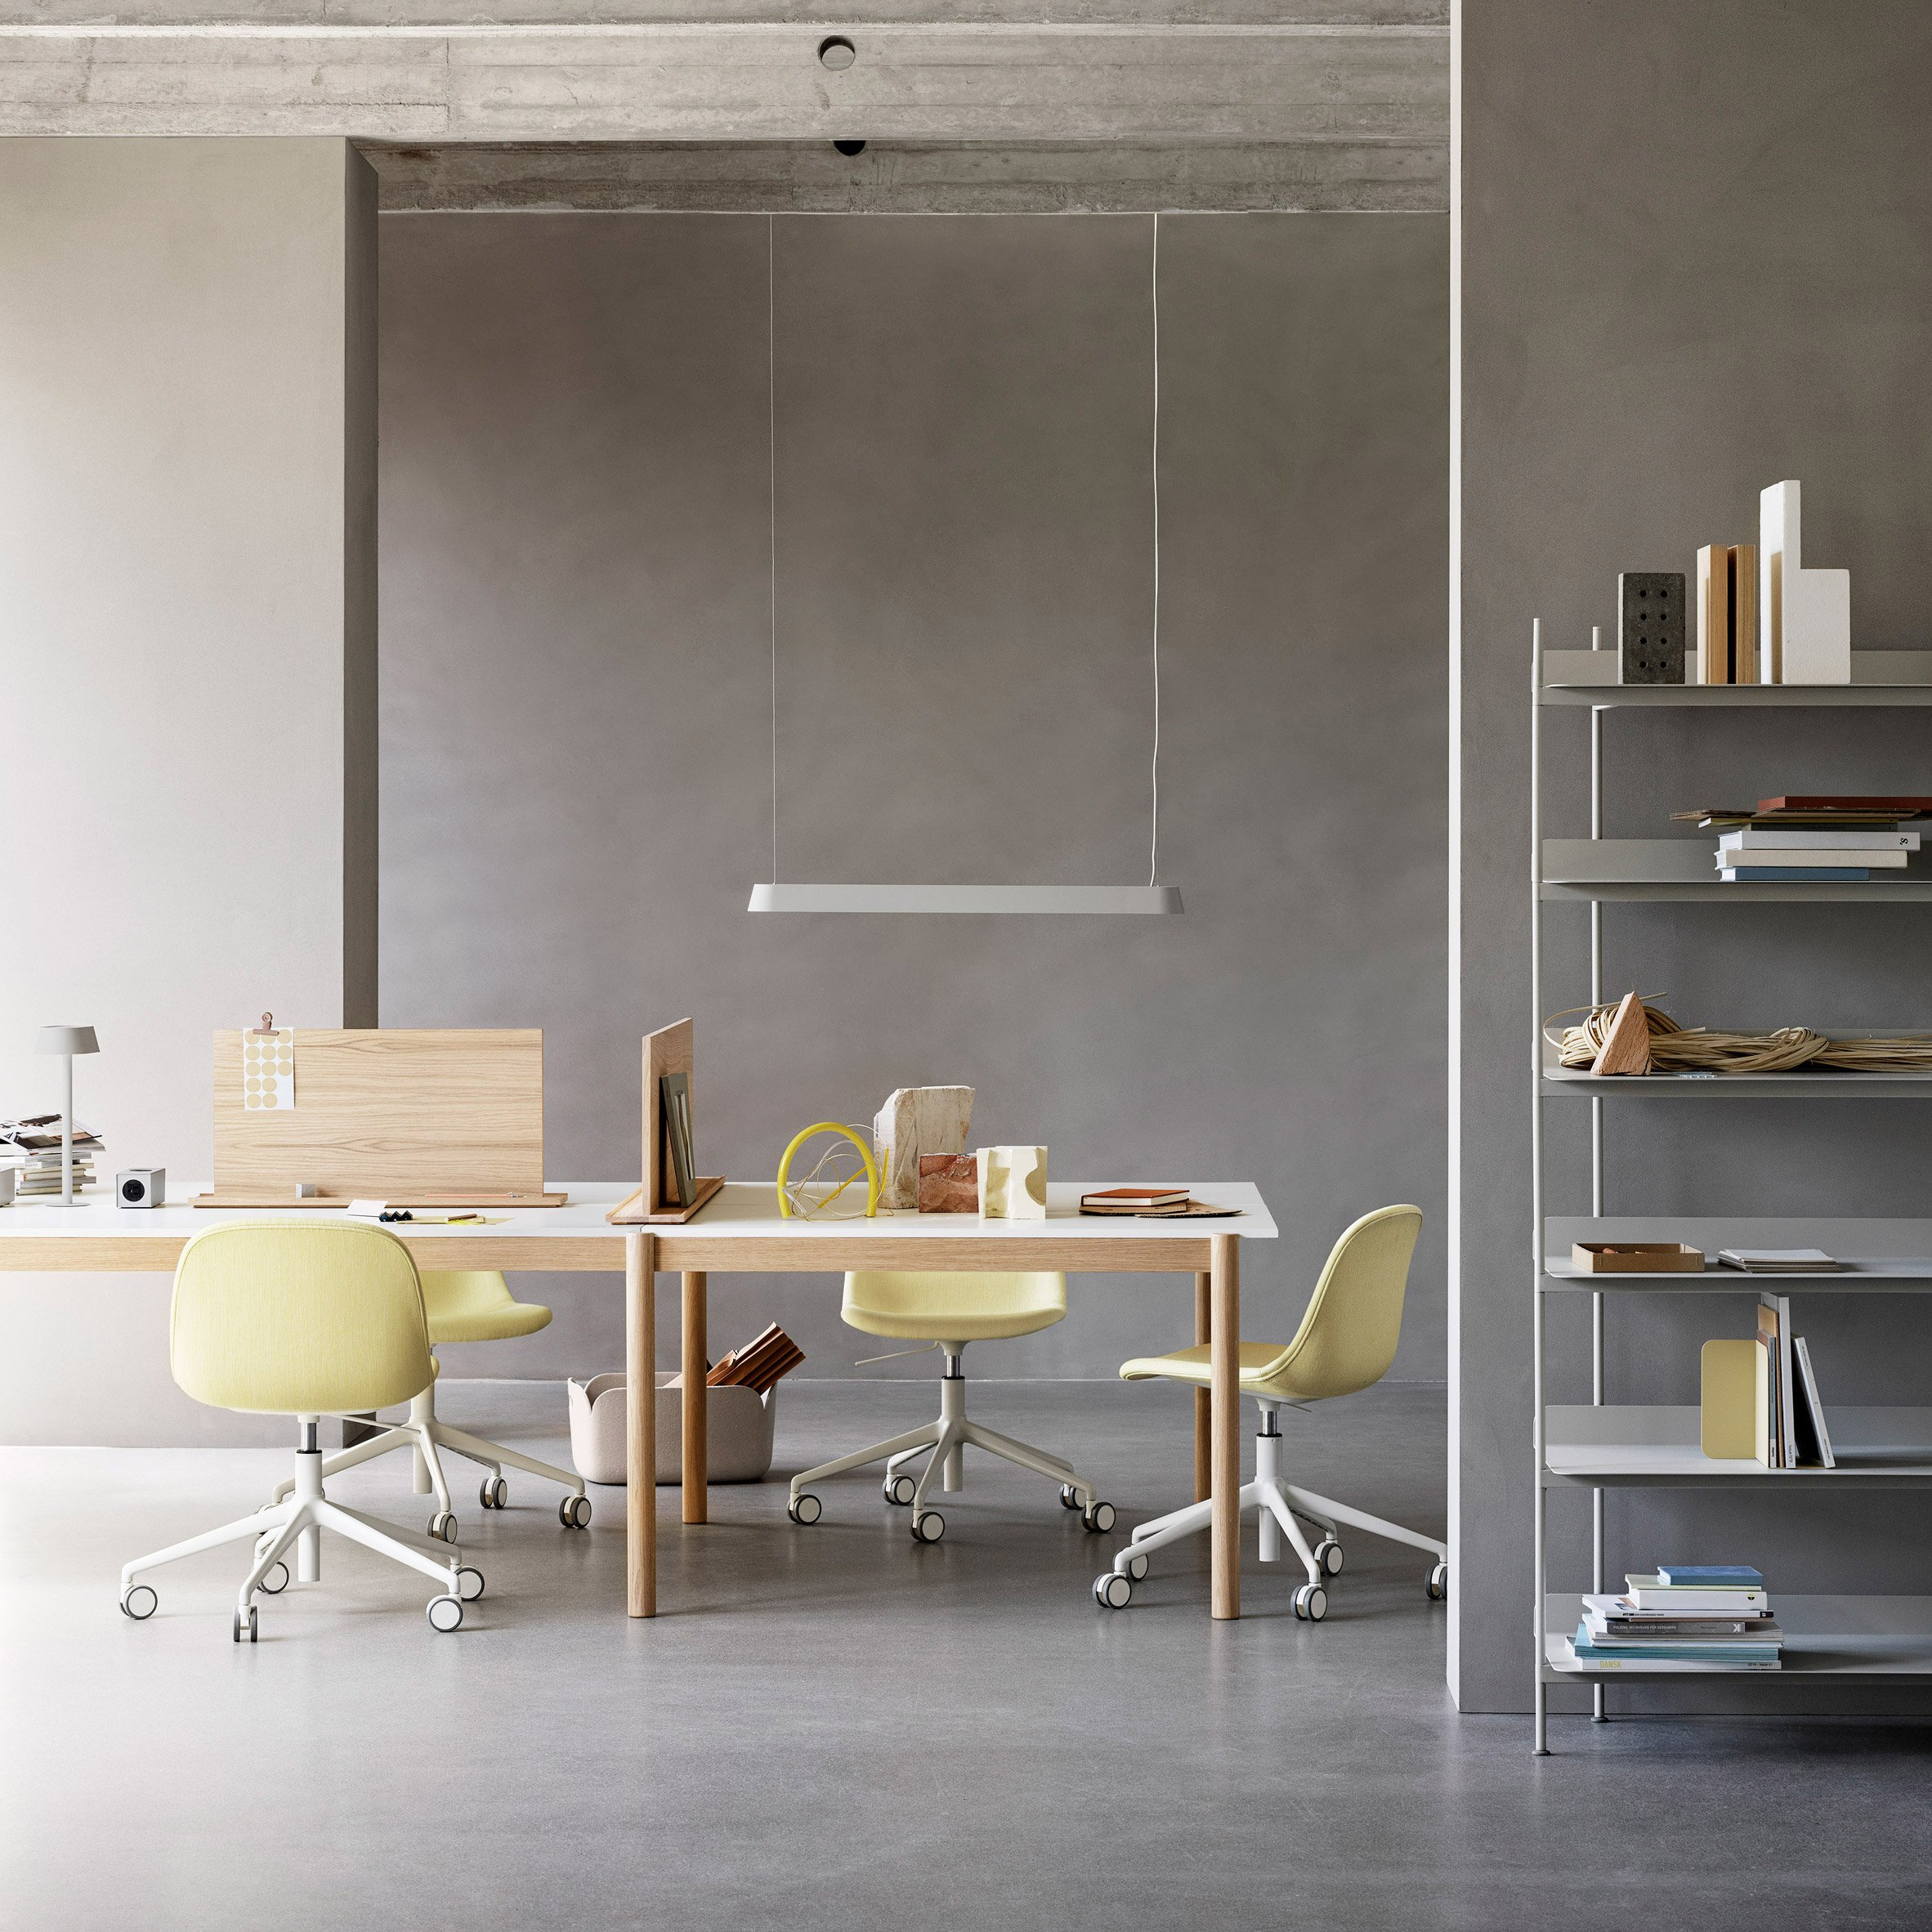 Products from Thomas Bentzen's The Linear System Series for Muuto